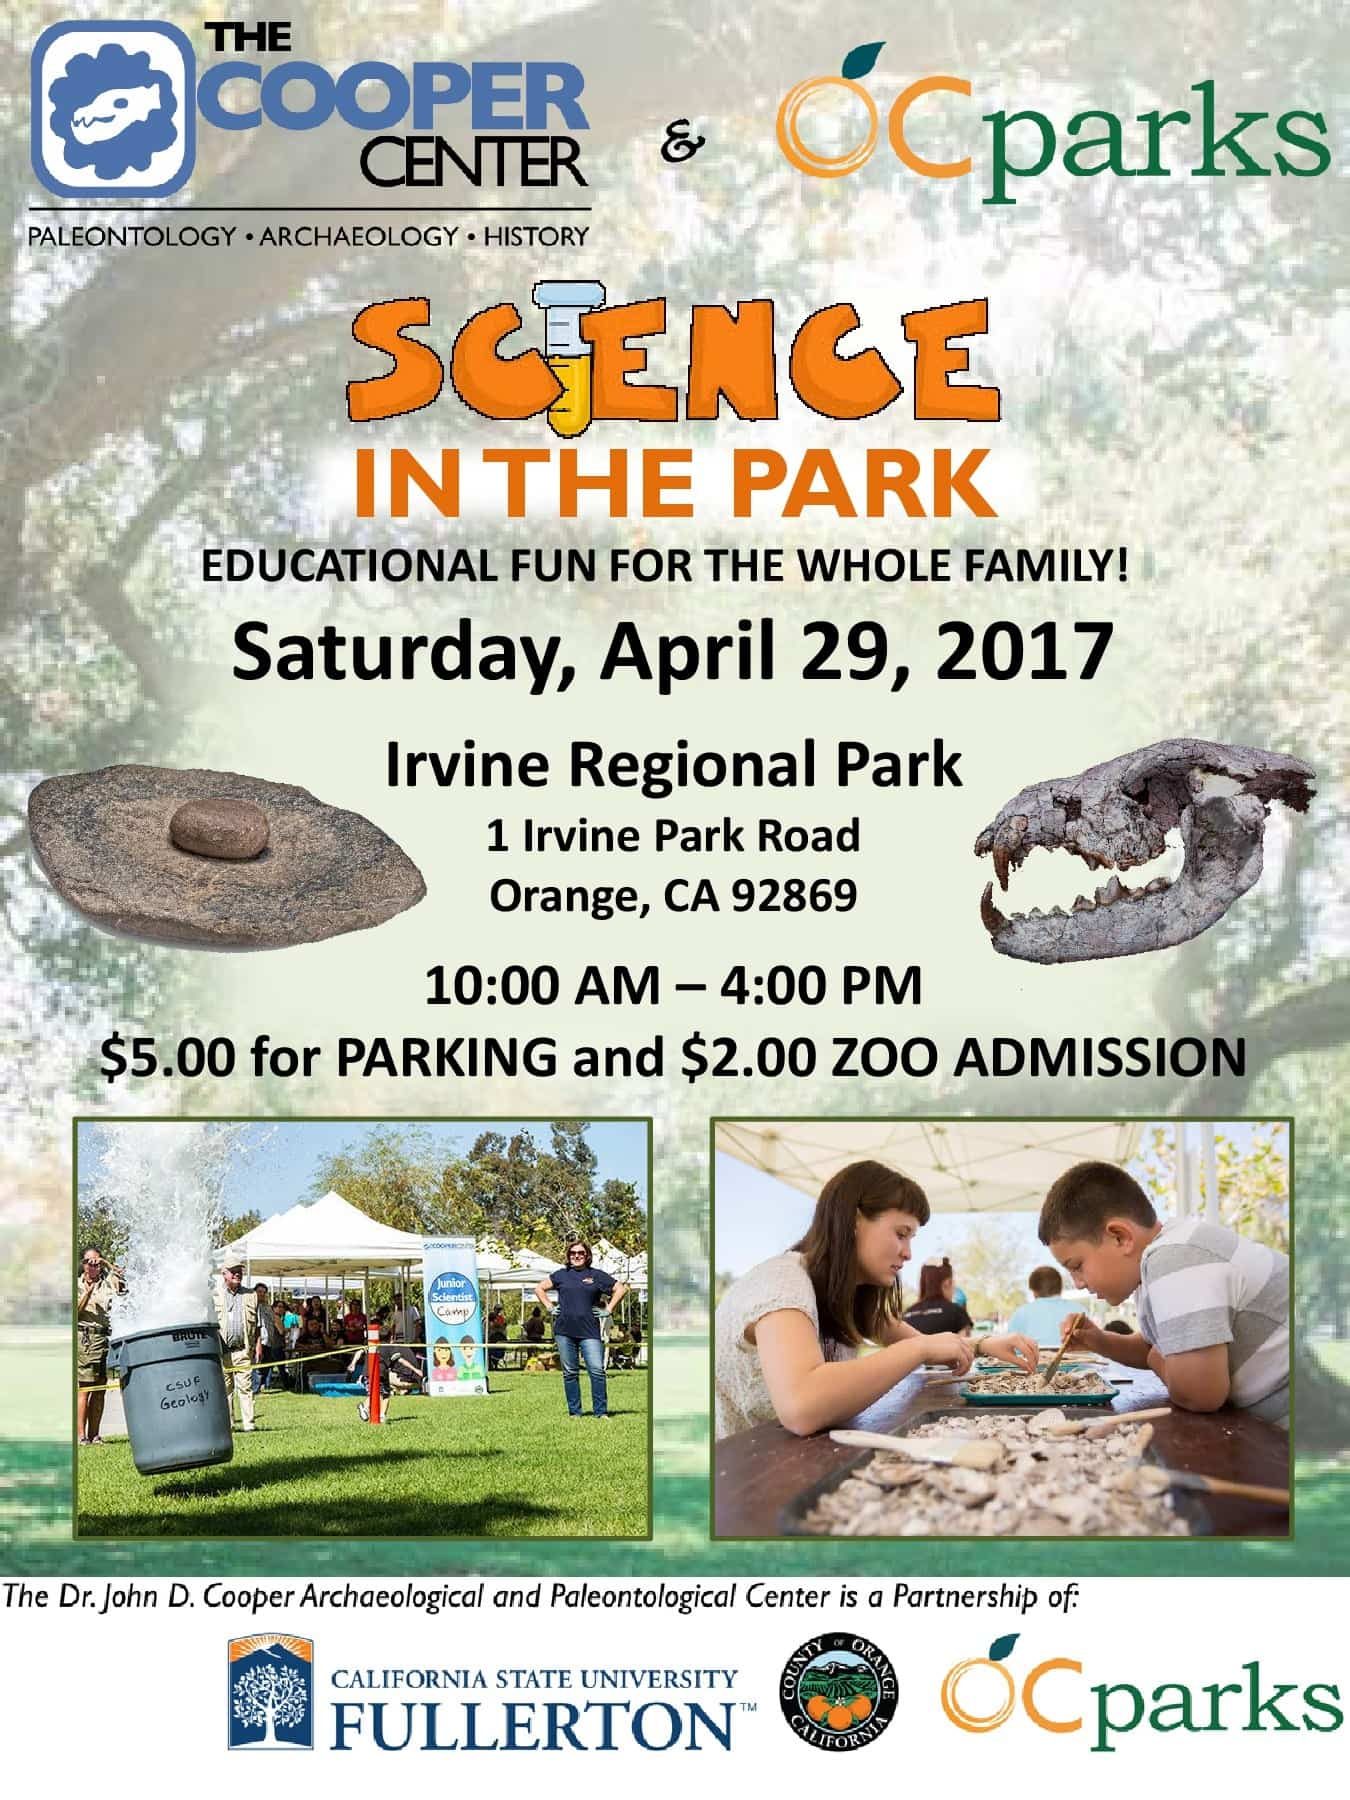 Does your child love science? During Science in the Park at the Irvine Regional Park on April 29, children will not only have the opportunity to learn more about archaeology, but other activities include paleontological demonstrations and exhibits, science experiments, volcano demonstrations and lectures by leading experts in their fields.